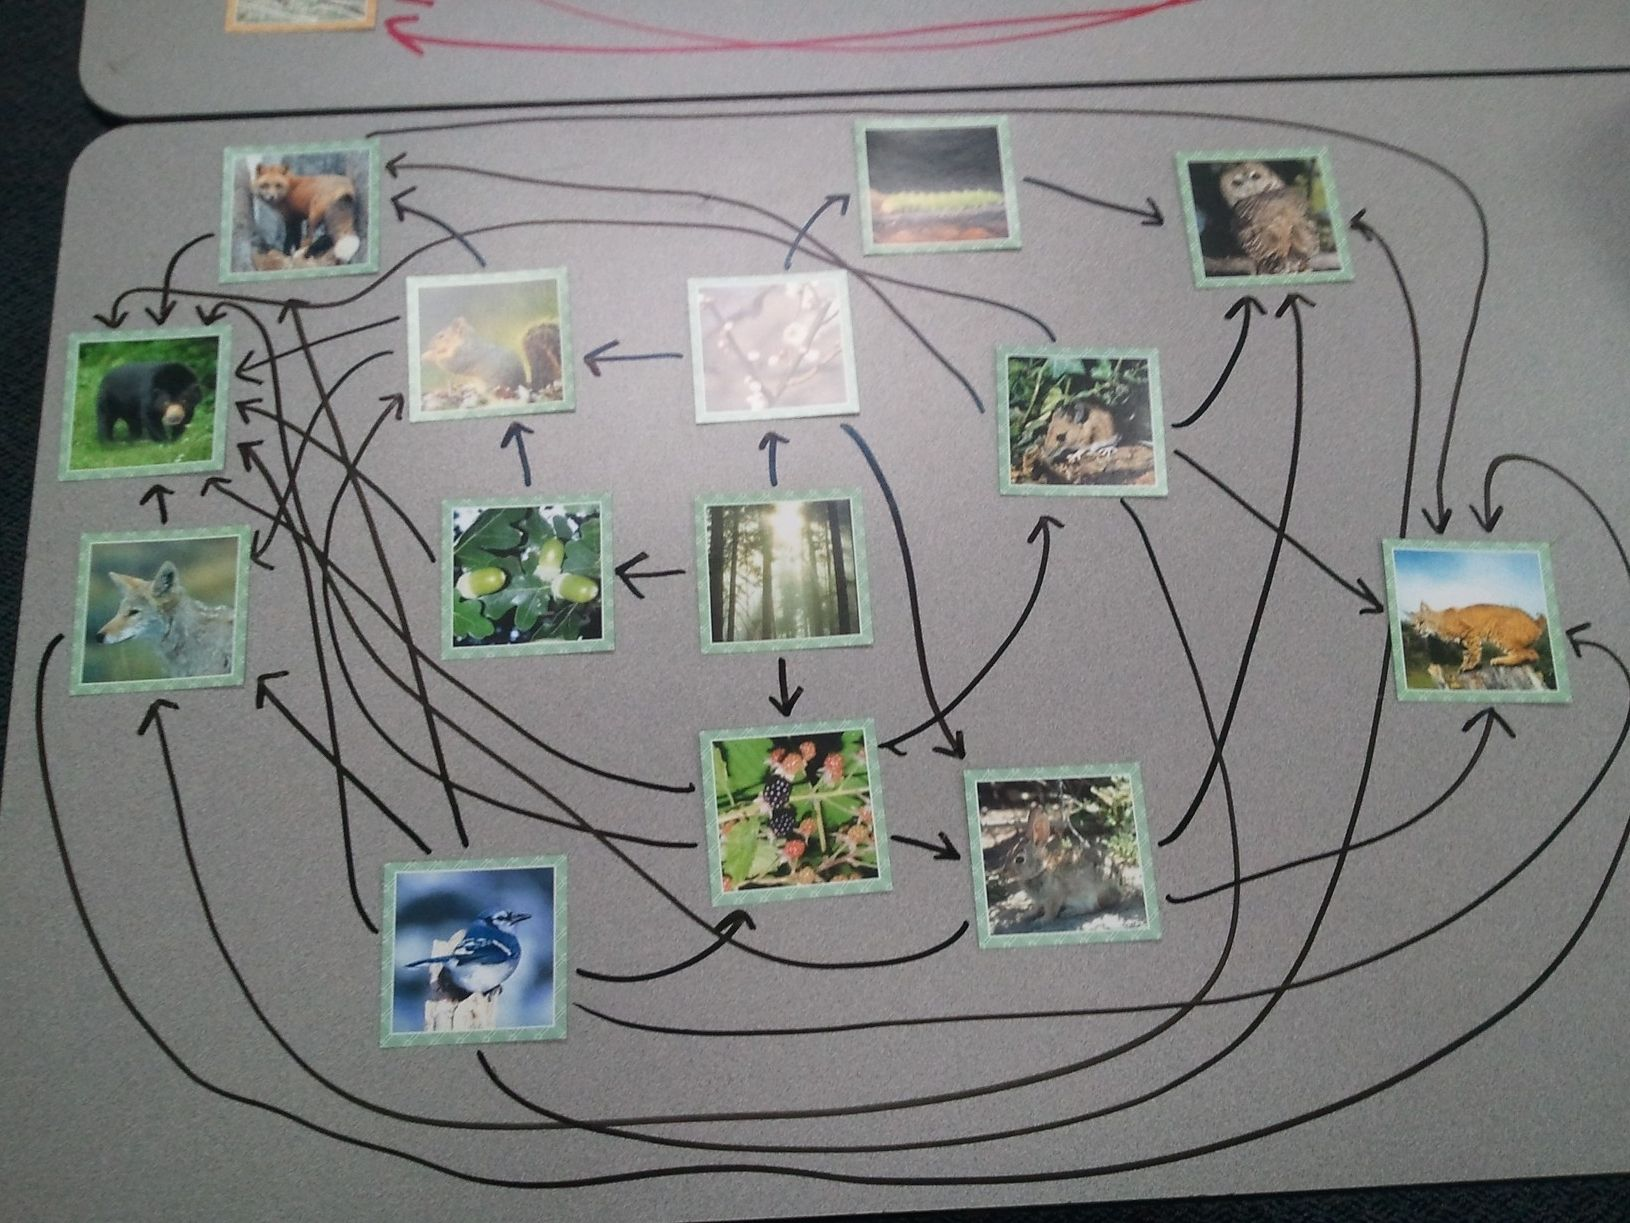 Food Web Class Activity Put Up The Pics And Have Students